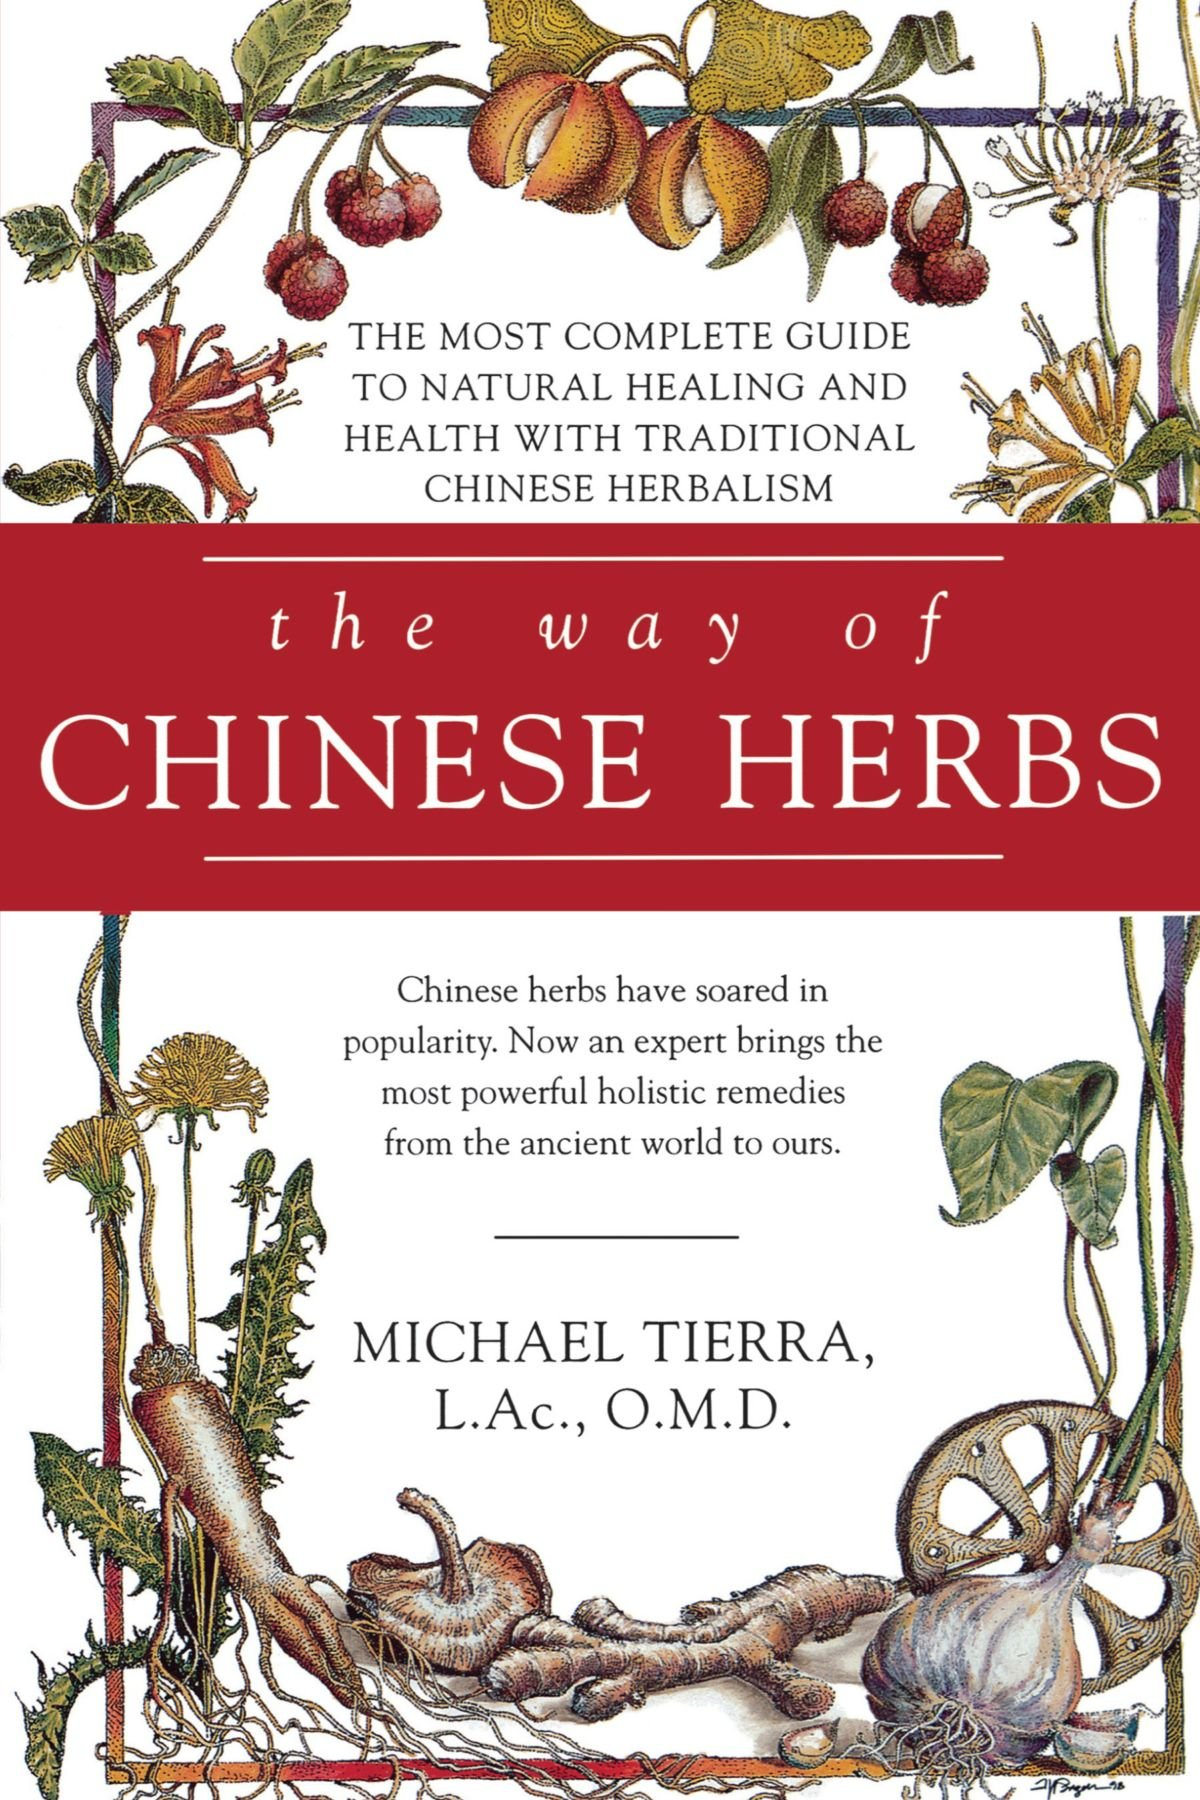 Buying chinese herbs online - The Way Of Chinese Herbs Michael Tierra 9780671898694 Amazon Com Books